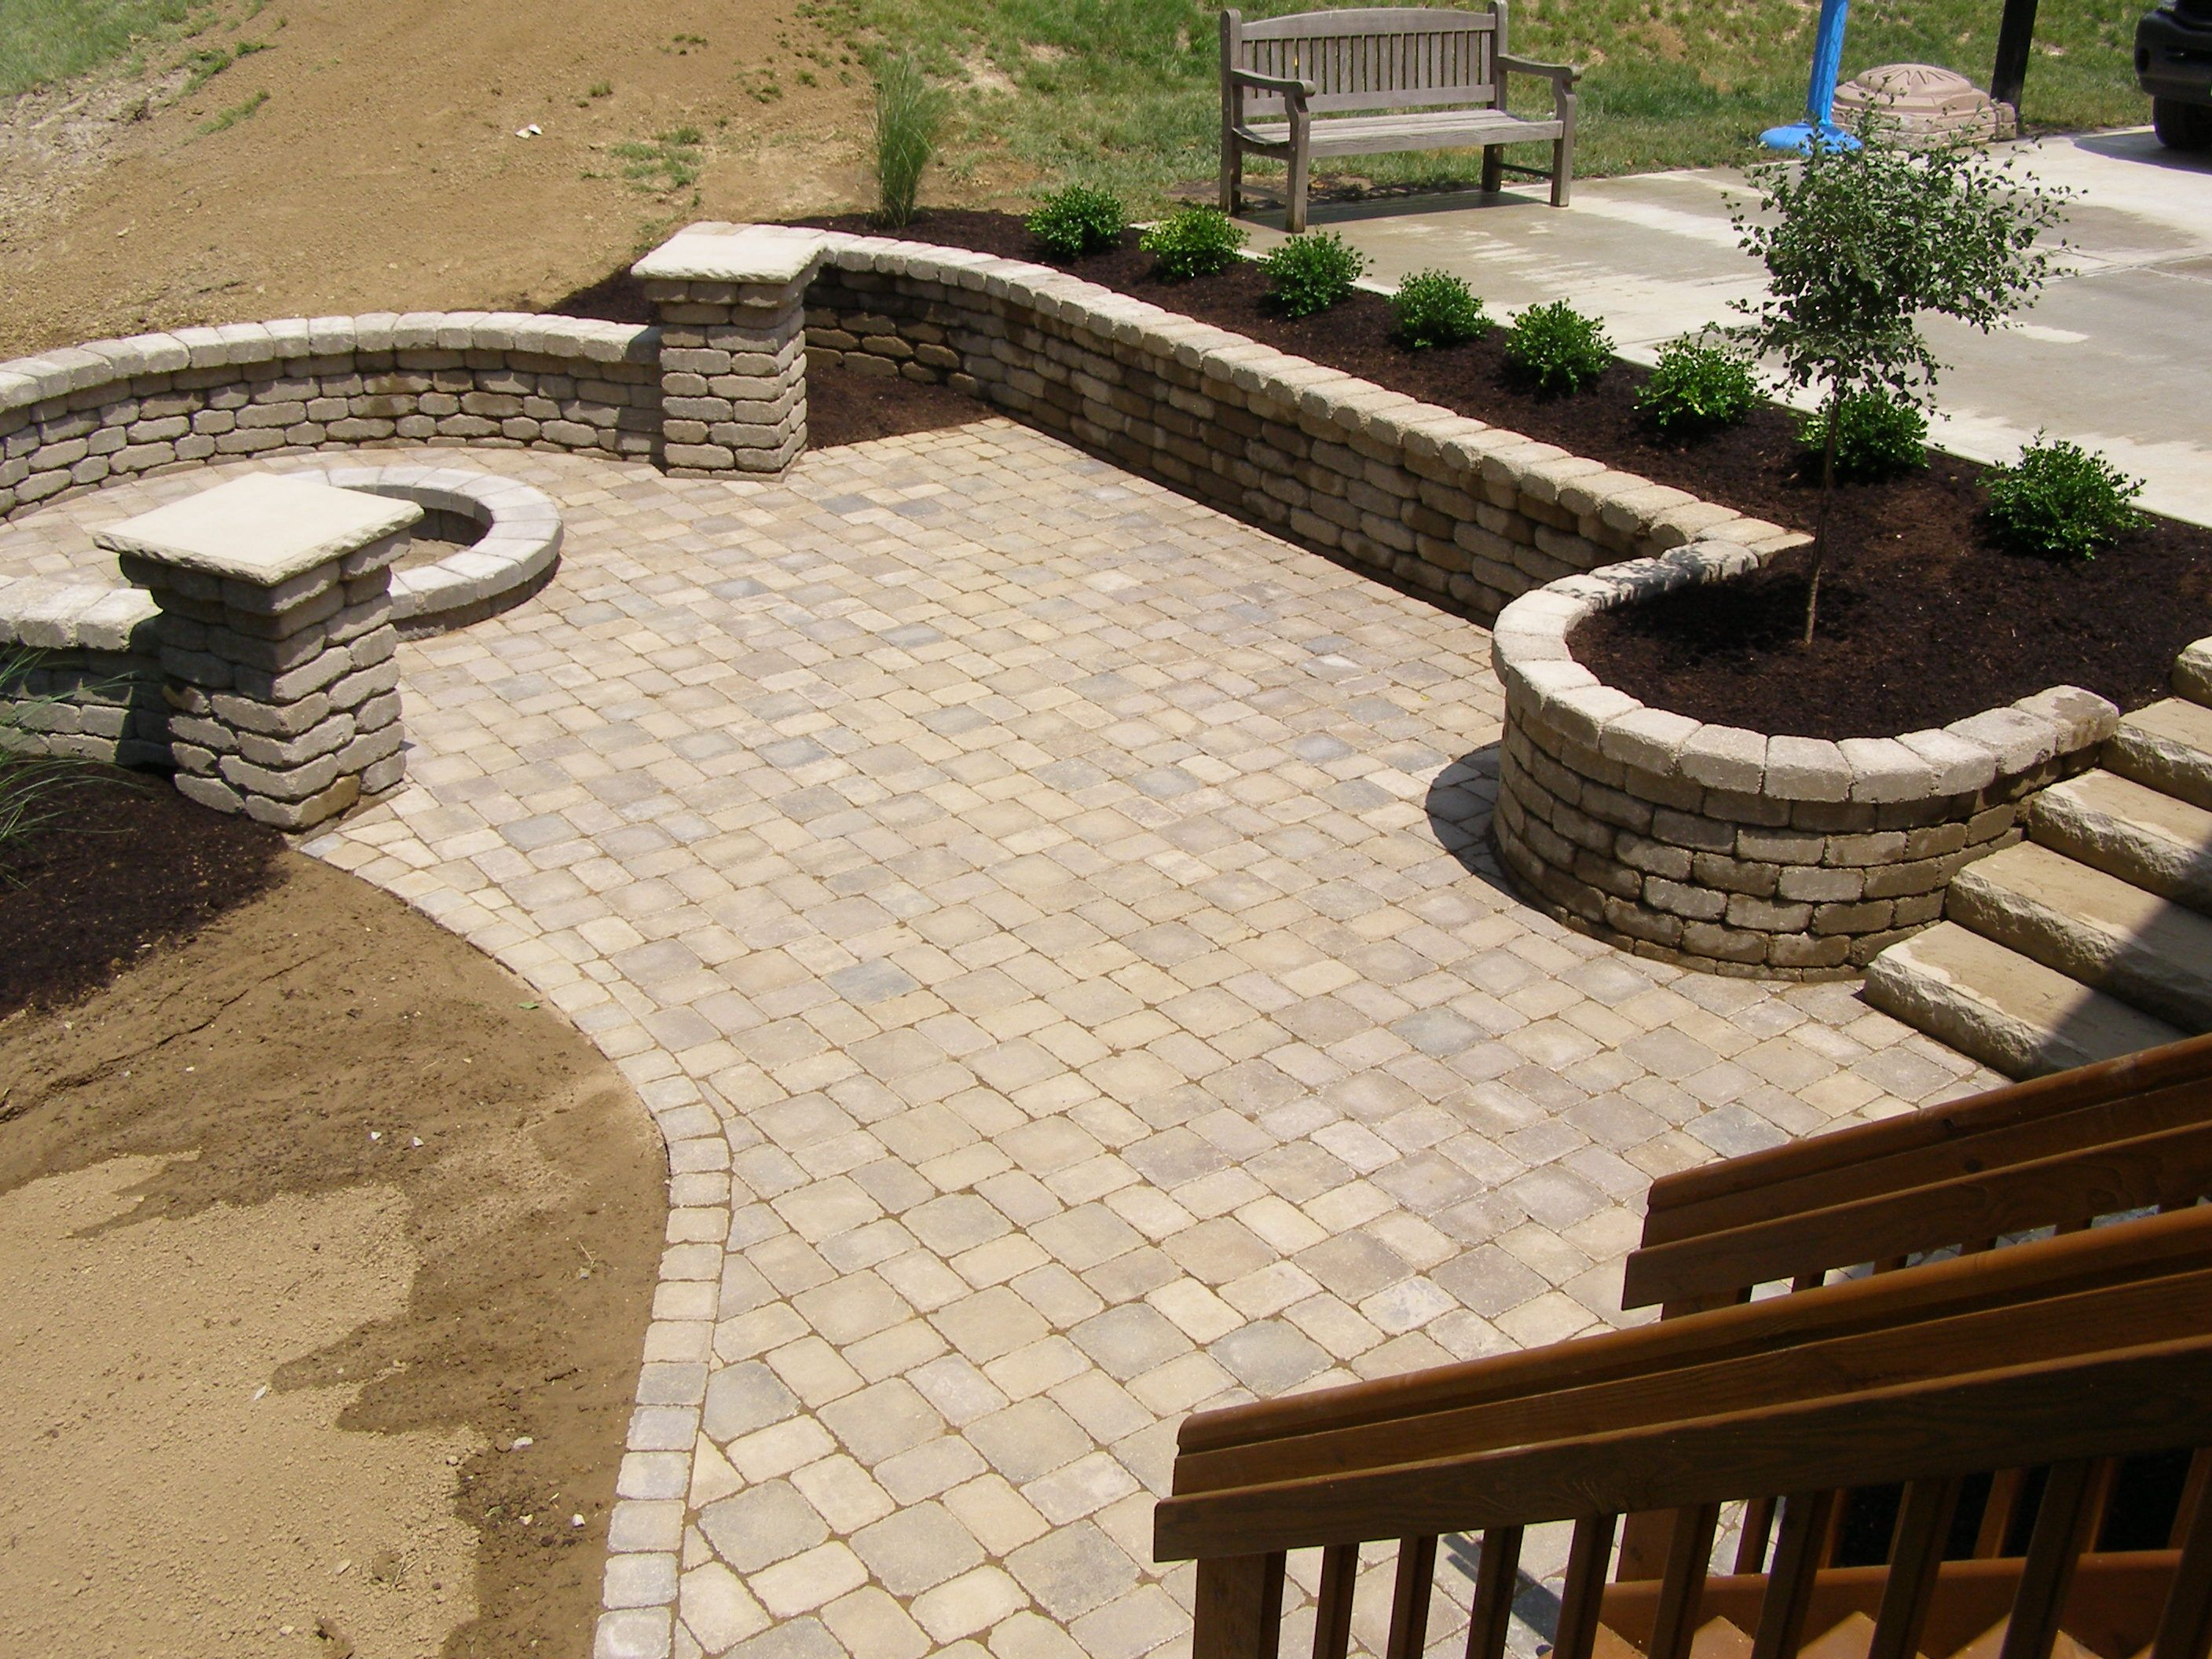 26 Awesome Stone Patio Designs for Your Home | Stone patio designs ...